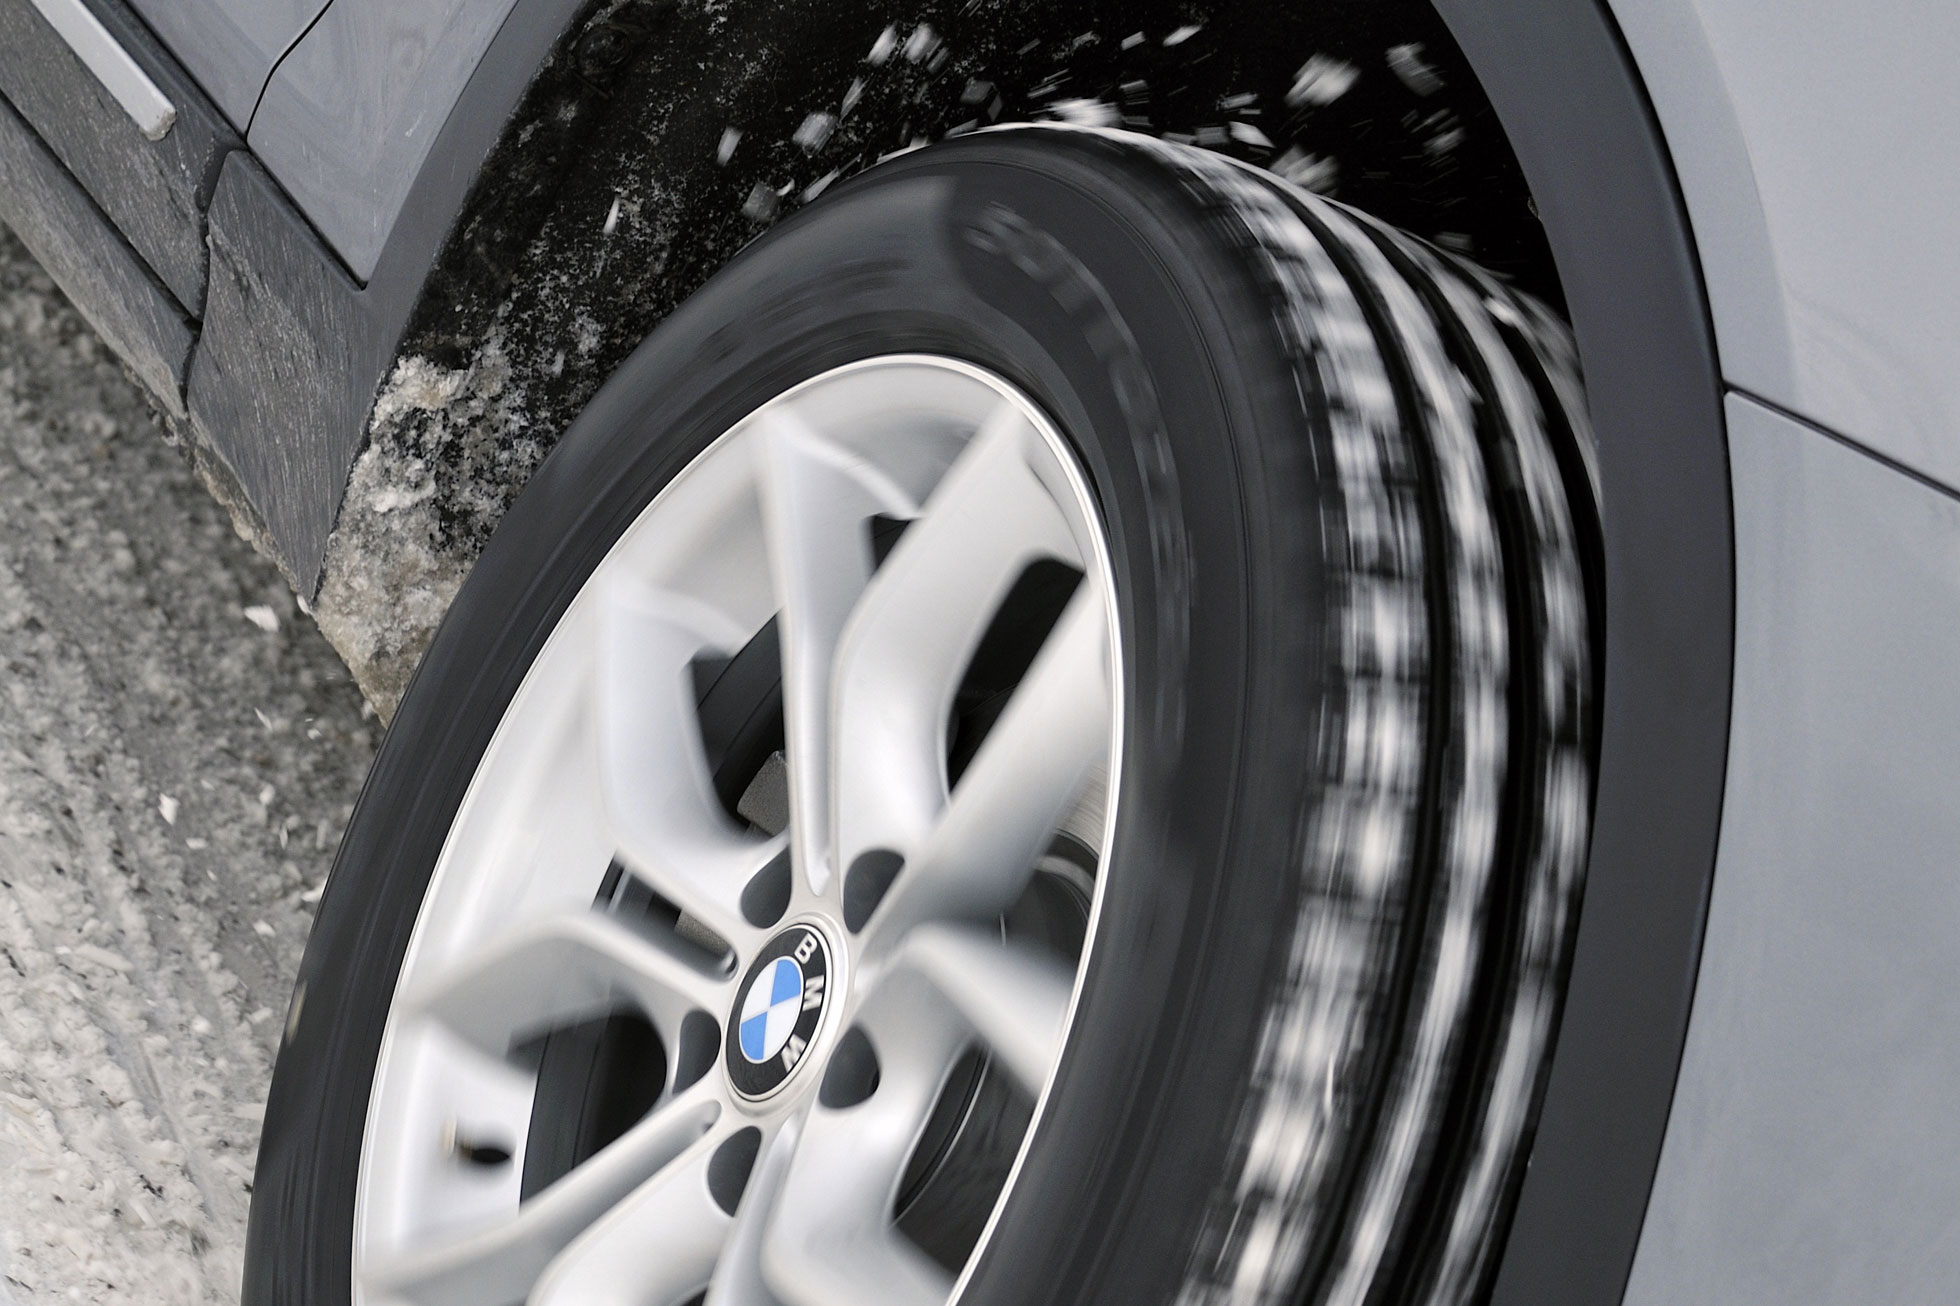 The winter tyre diaries: do I need to tell my insurance company?